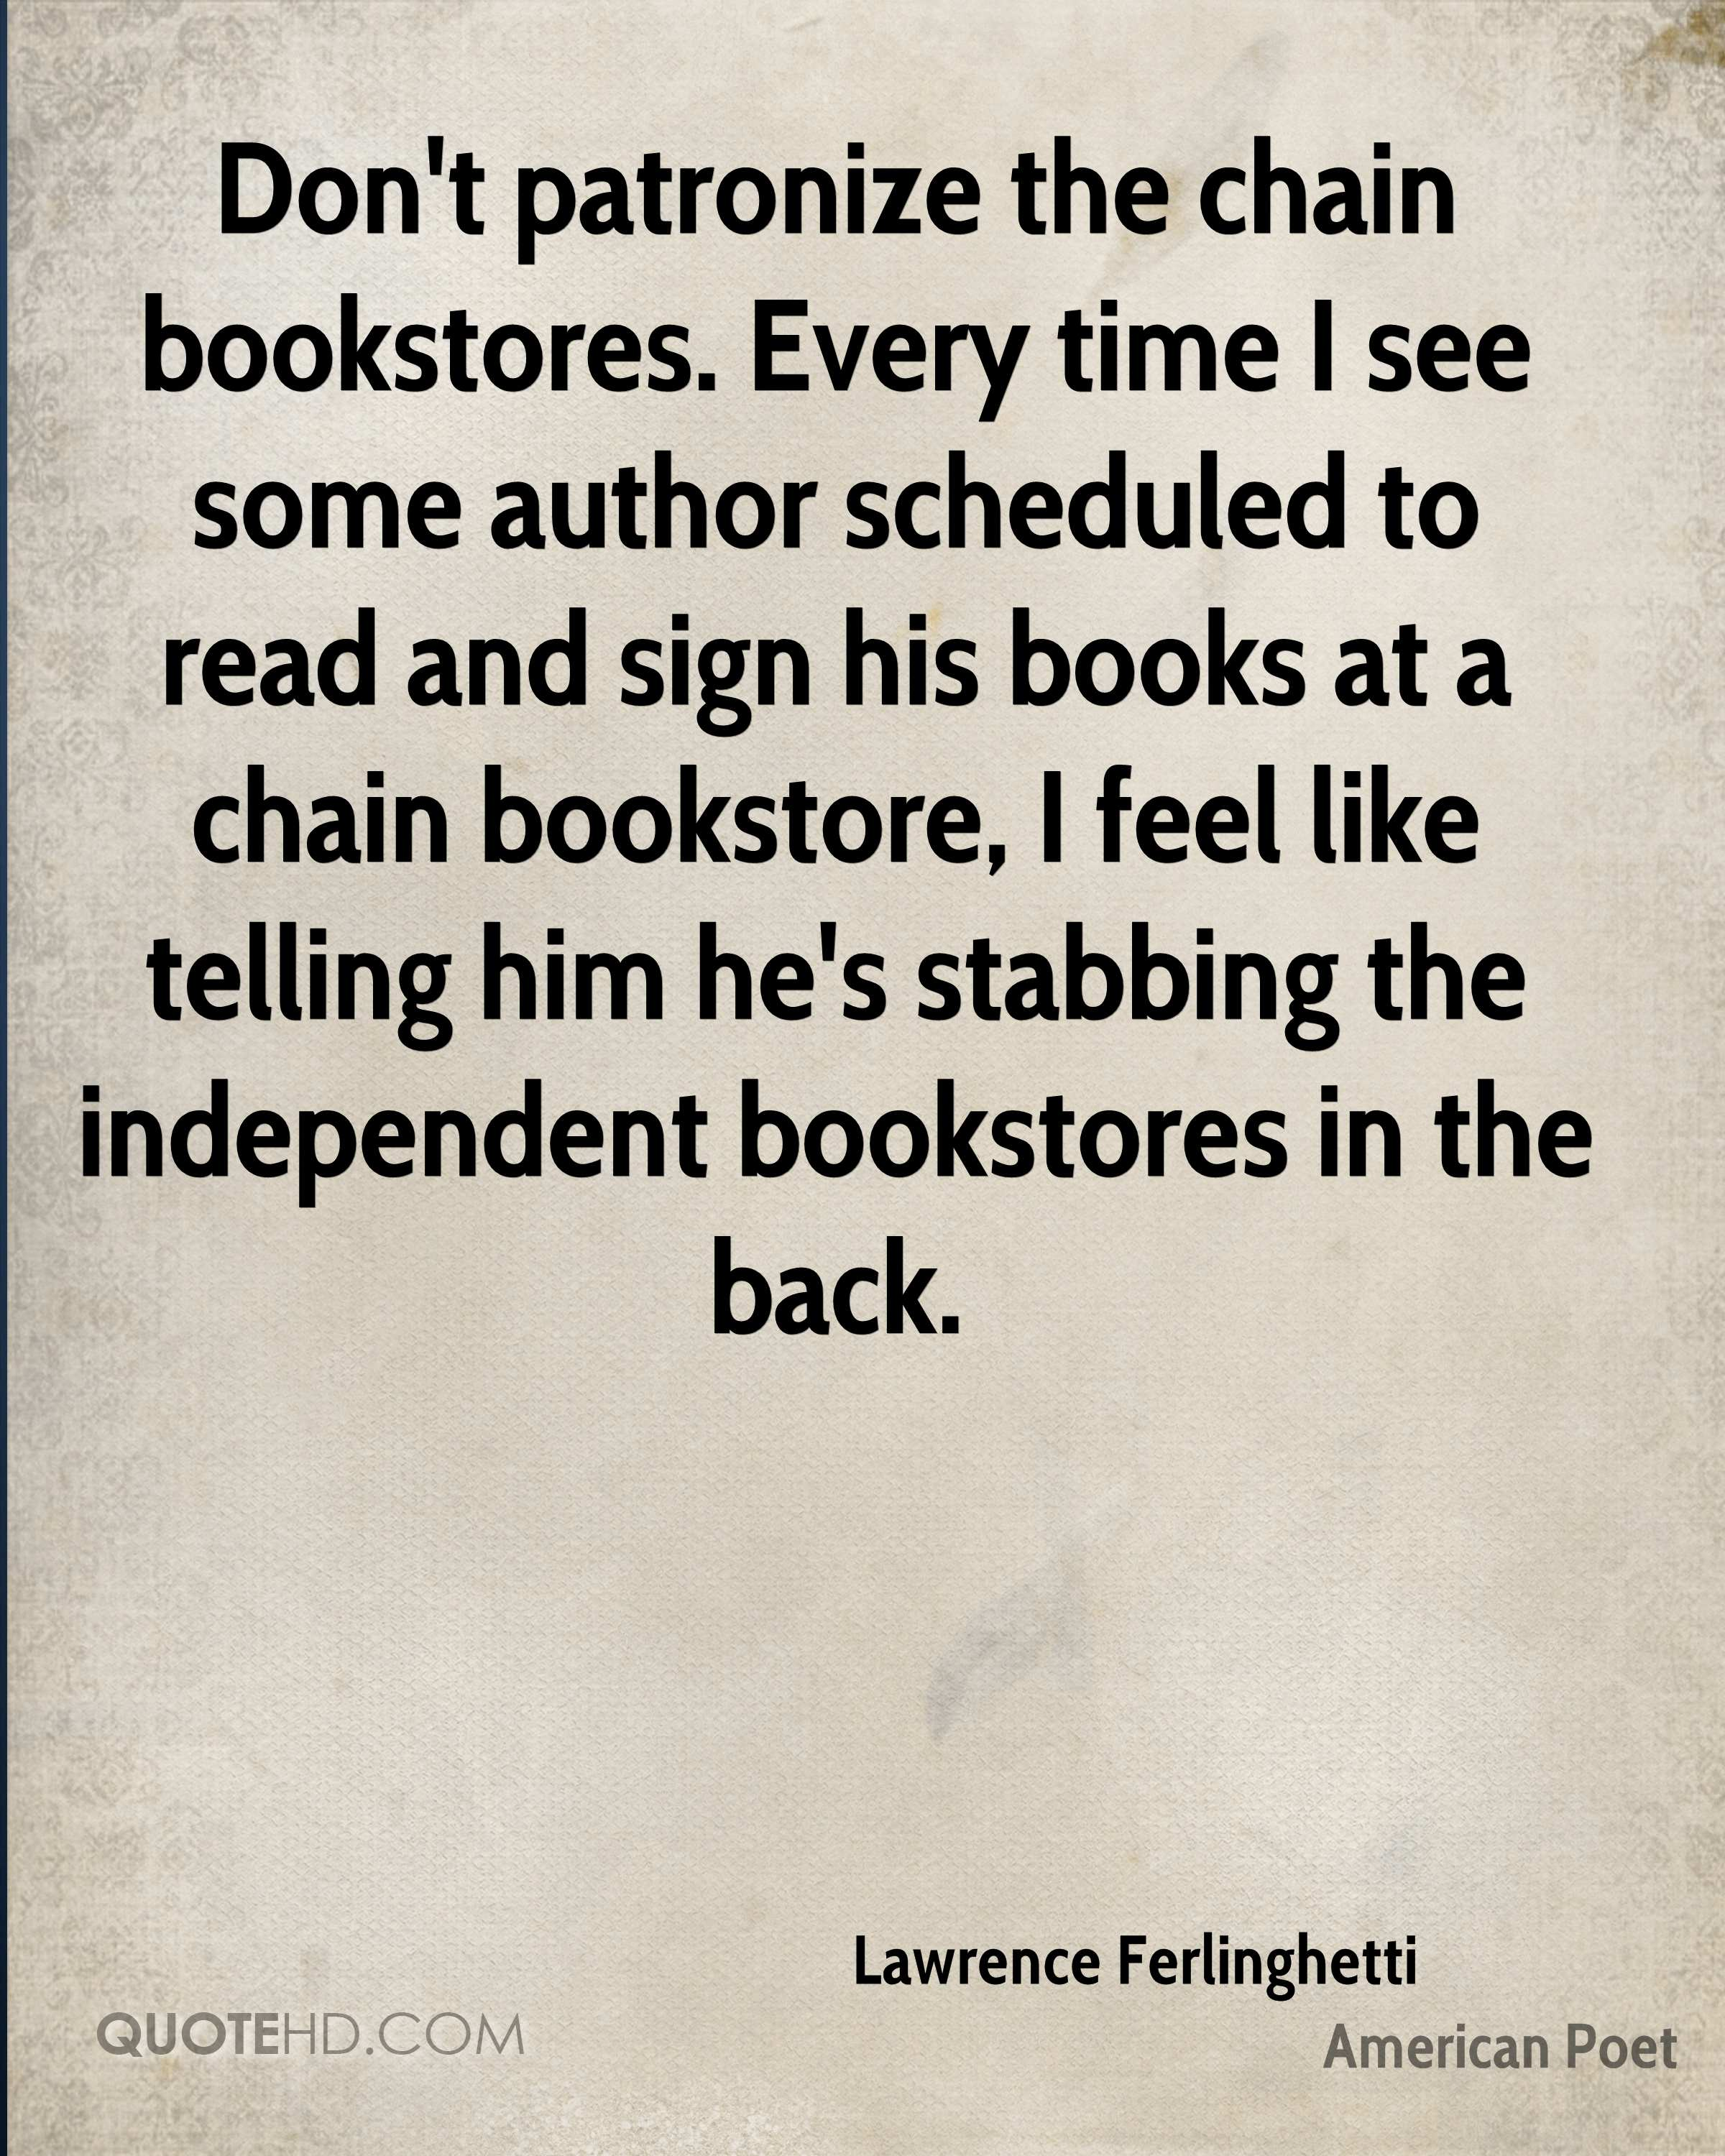 Don't patronize the chain bookstores. Every time I see some author scheduled to read and sign his books at a chain bookstore, I feel like telling him he's stabbing the independent bookstores in the back.